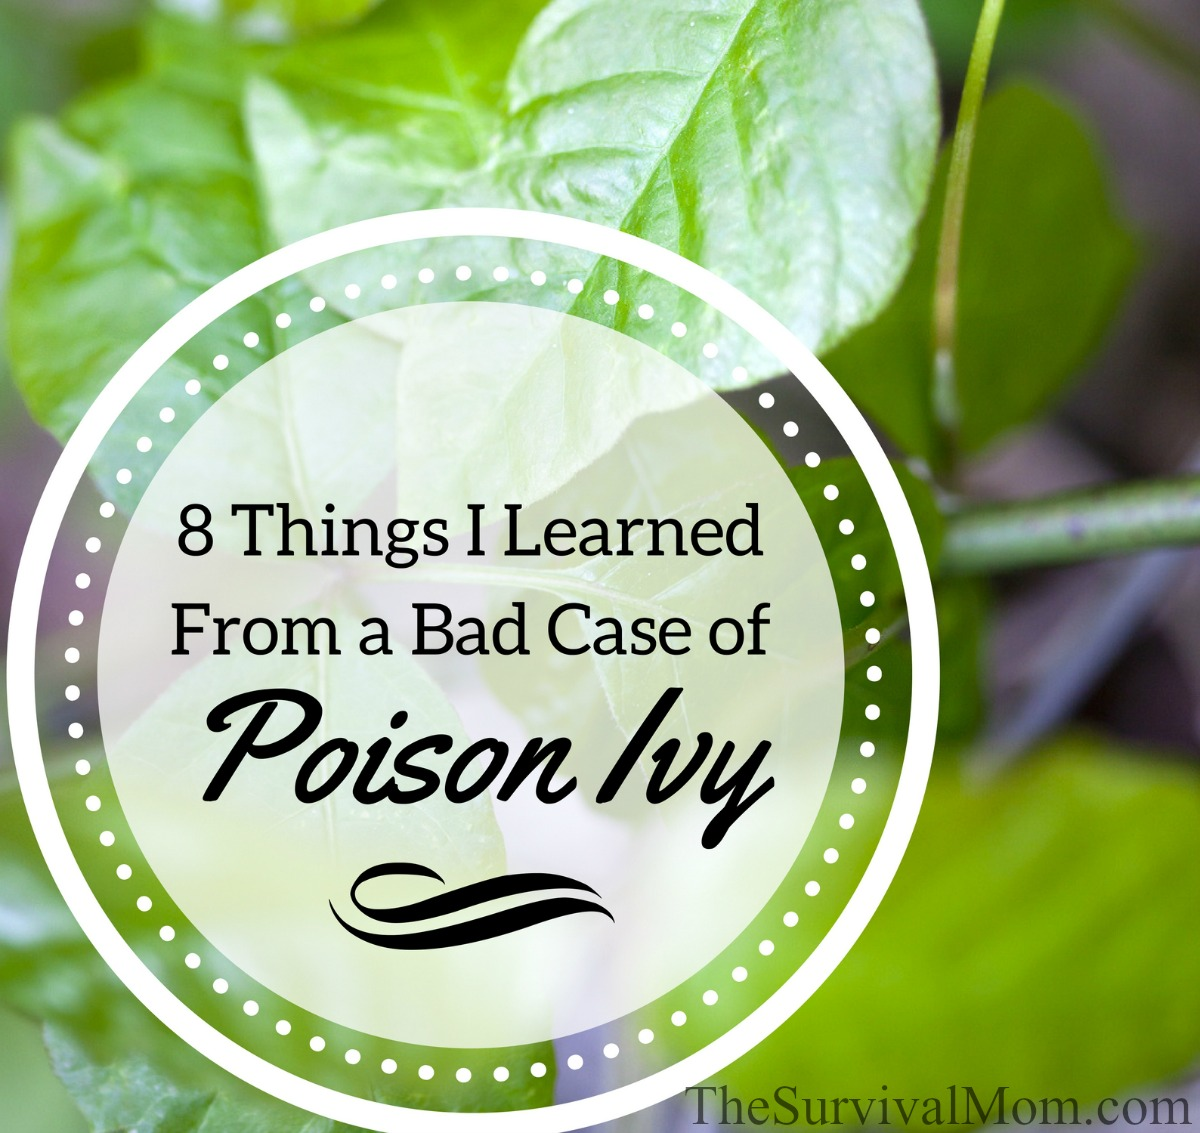 8 Things I Learned From a Bad Case of Poison Ivy via The Survival Mom